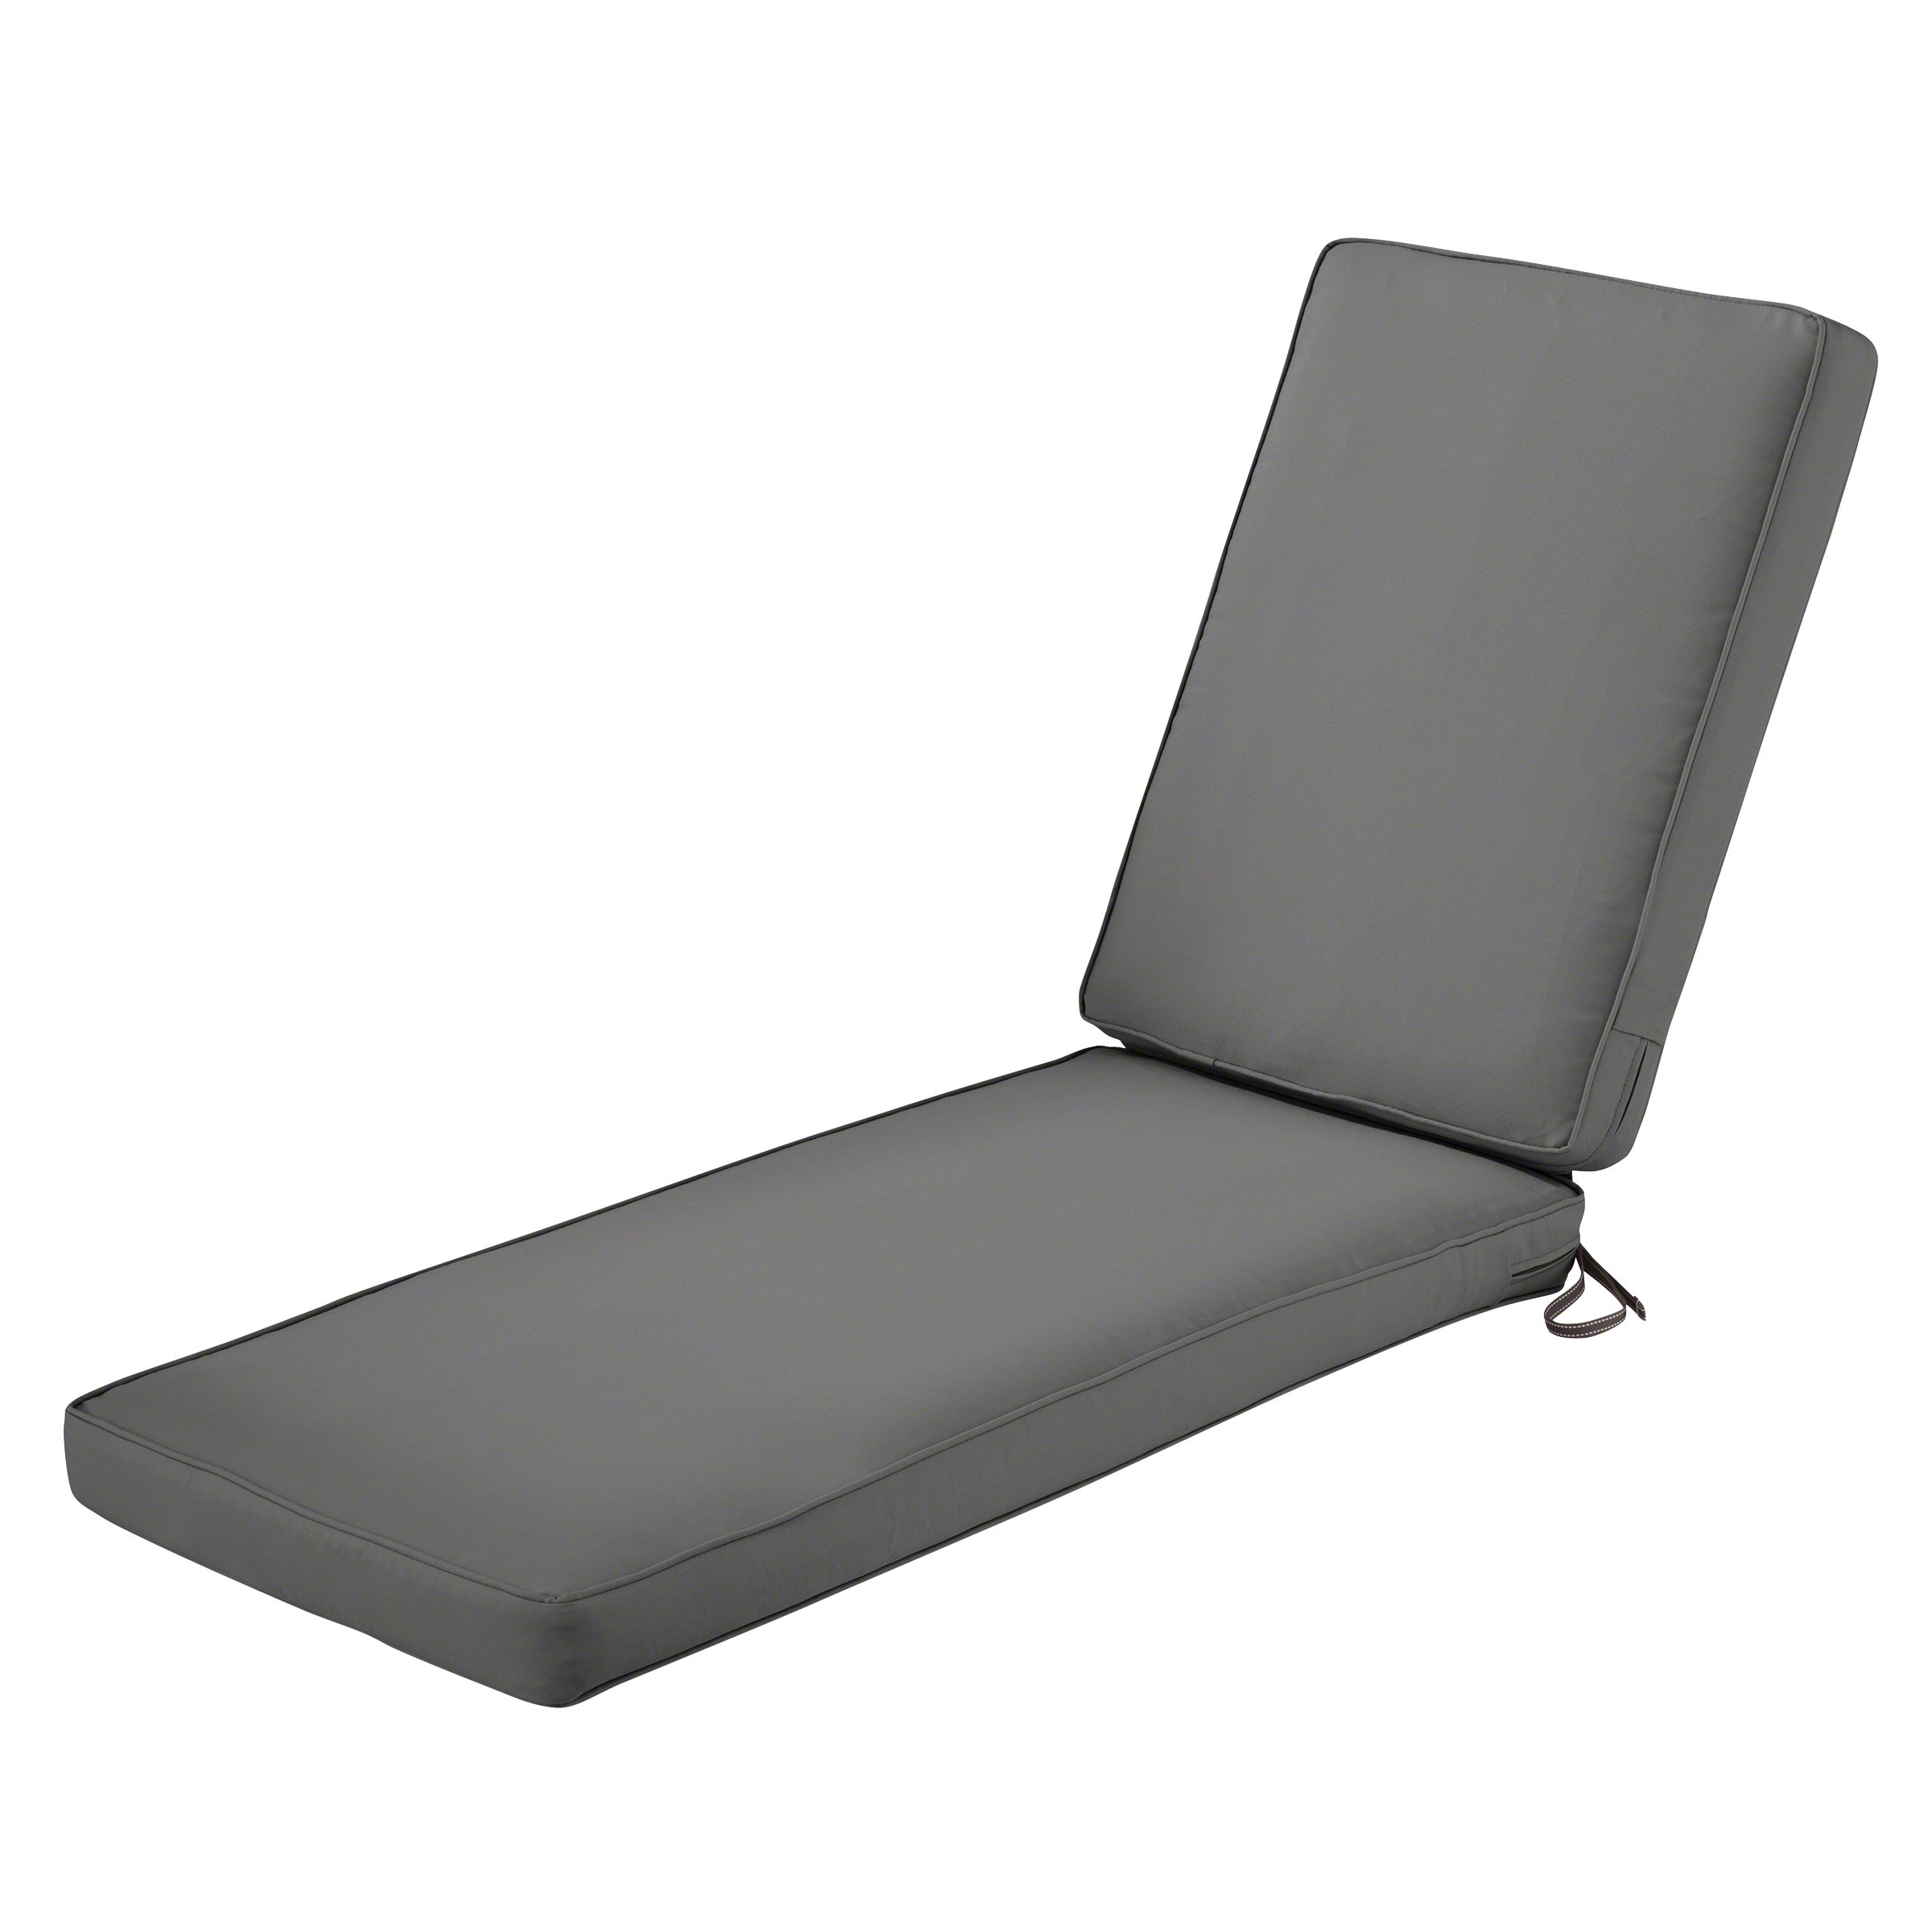 Classic Accessories Montlake Chaise Cushion Foam & Slip Cover, Light Charcoal, 72x21x3 Thick